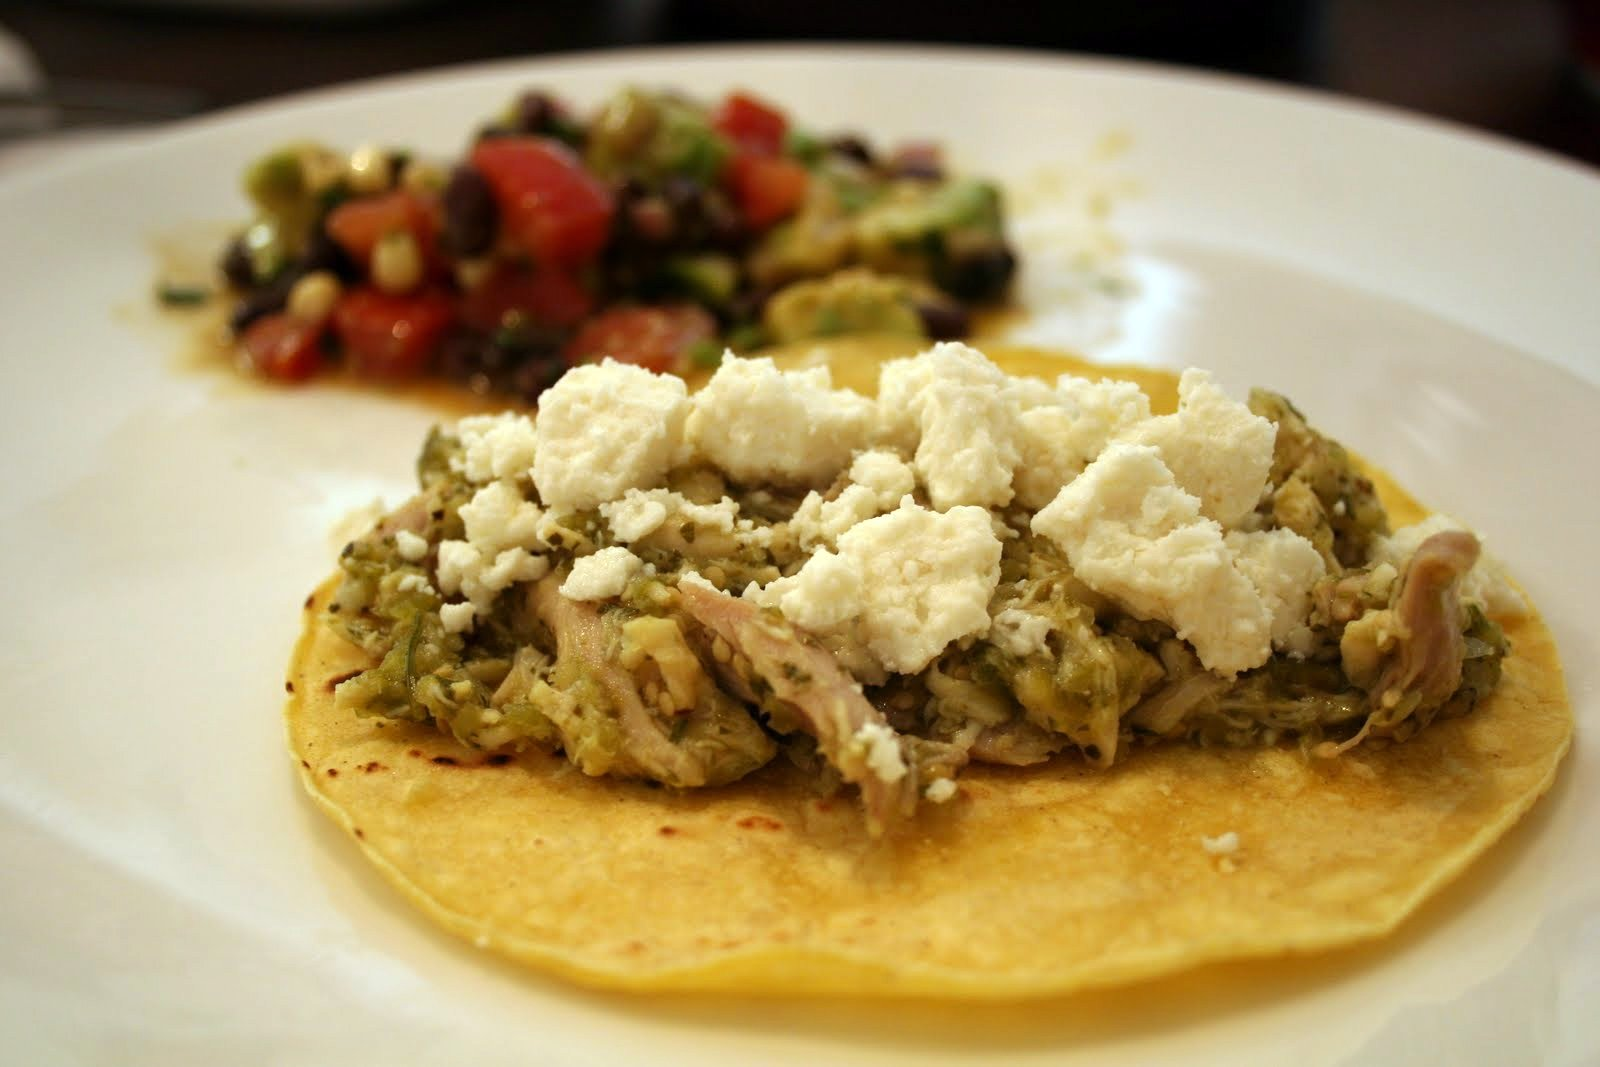 Stuff By Stace: Shredded Chicken and Tomatillo Tacos with Queso Fresco